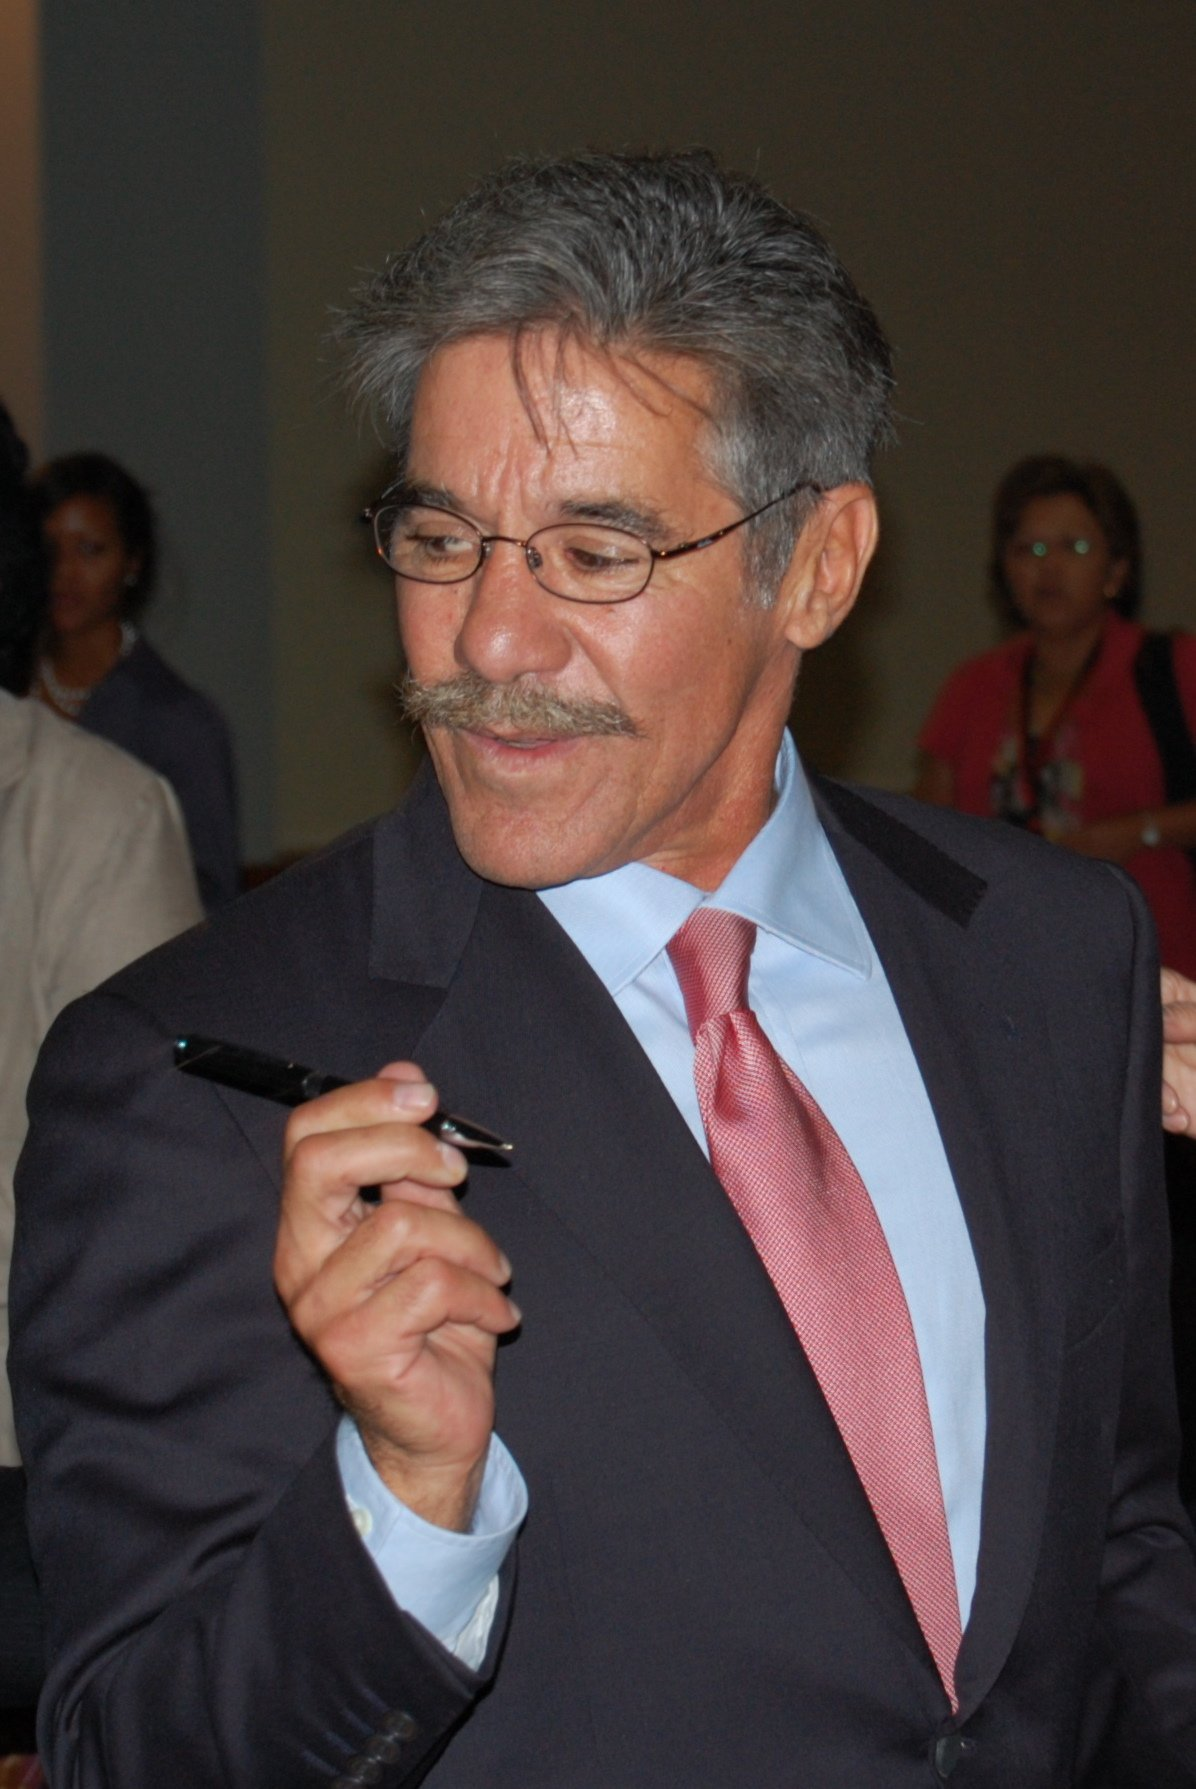 Geraldo Rivera on September 10, 2008 | Source: Wikimedia Commons